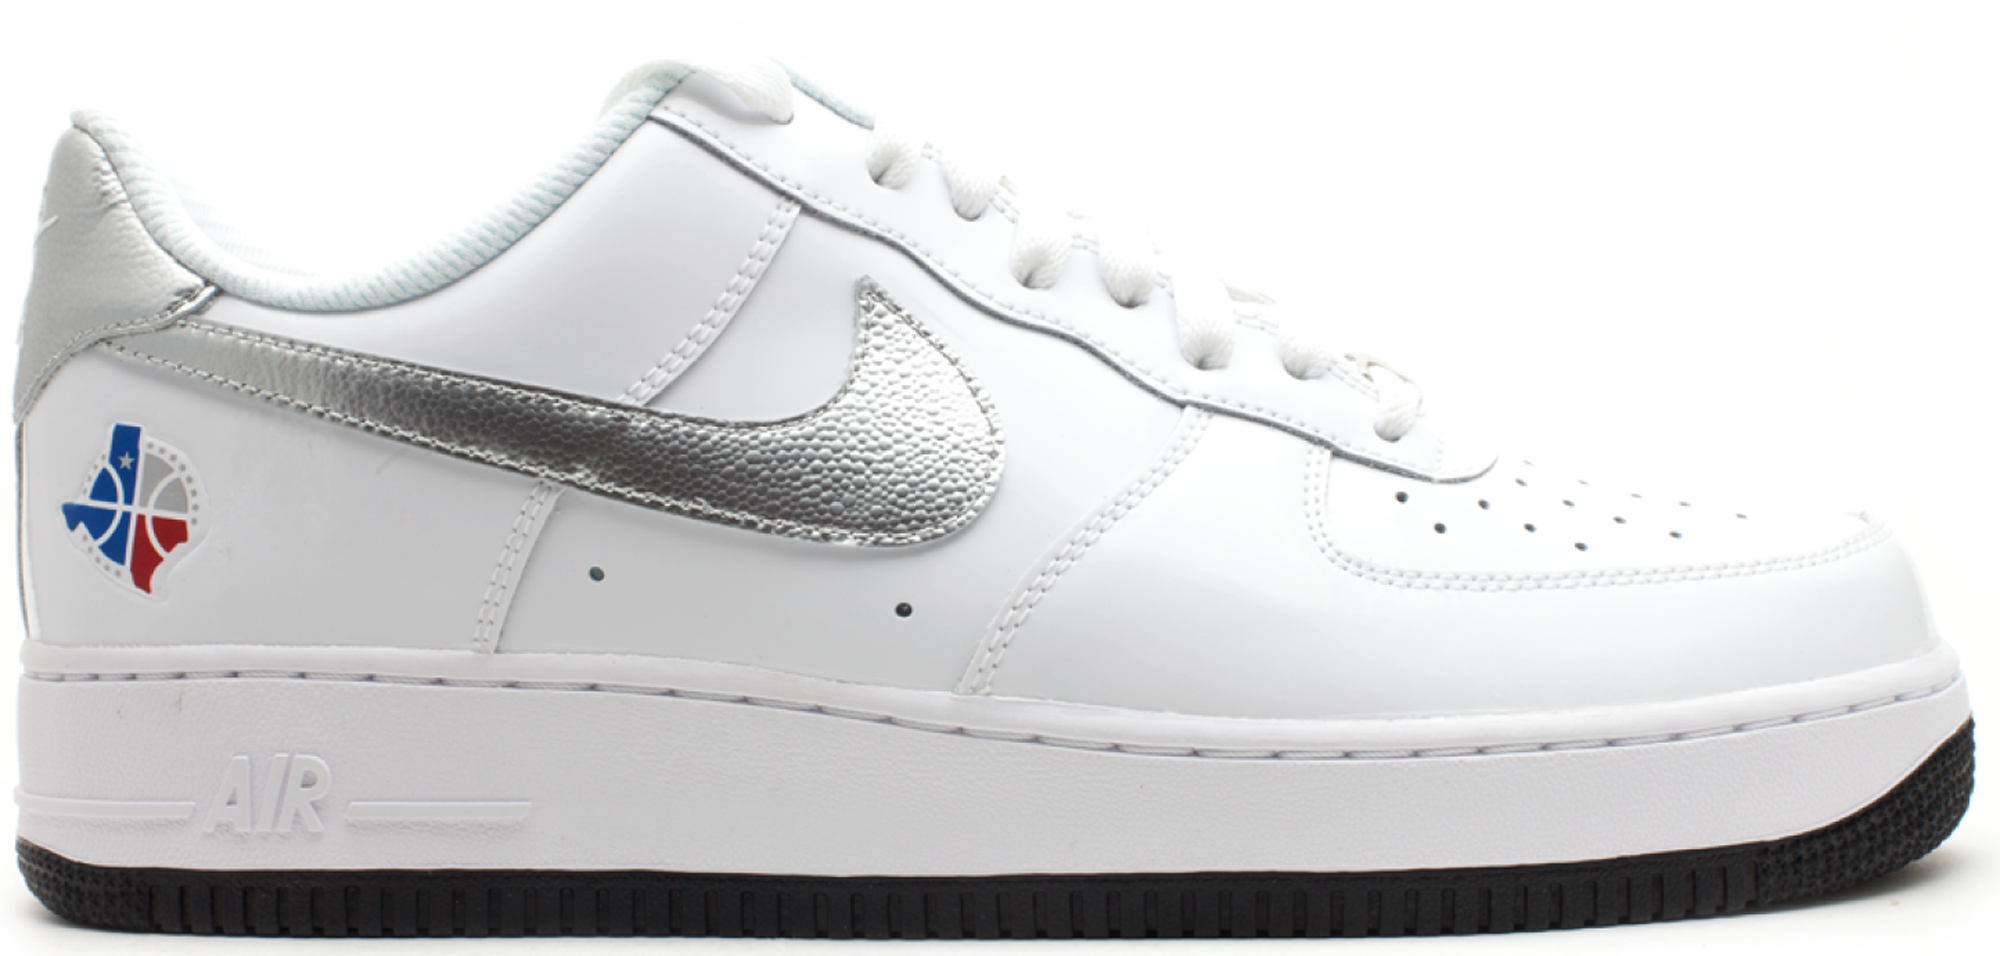 best loved 58c18 ce7d5 Air Force 1 Low All-Star 2010 White in White/Metallic Silver-Black